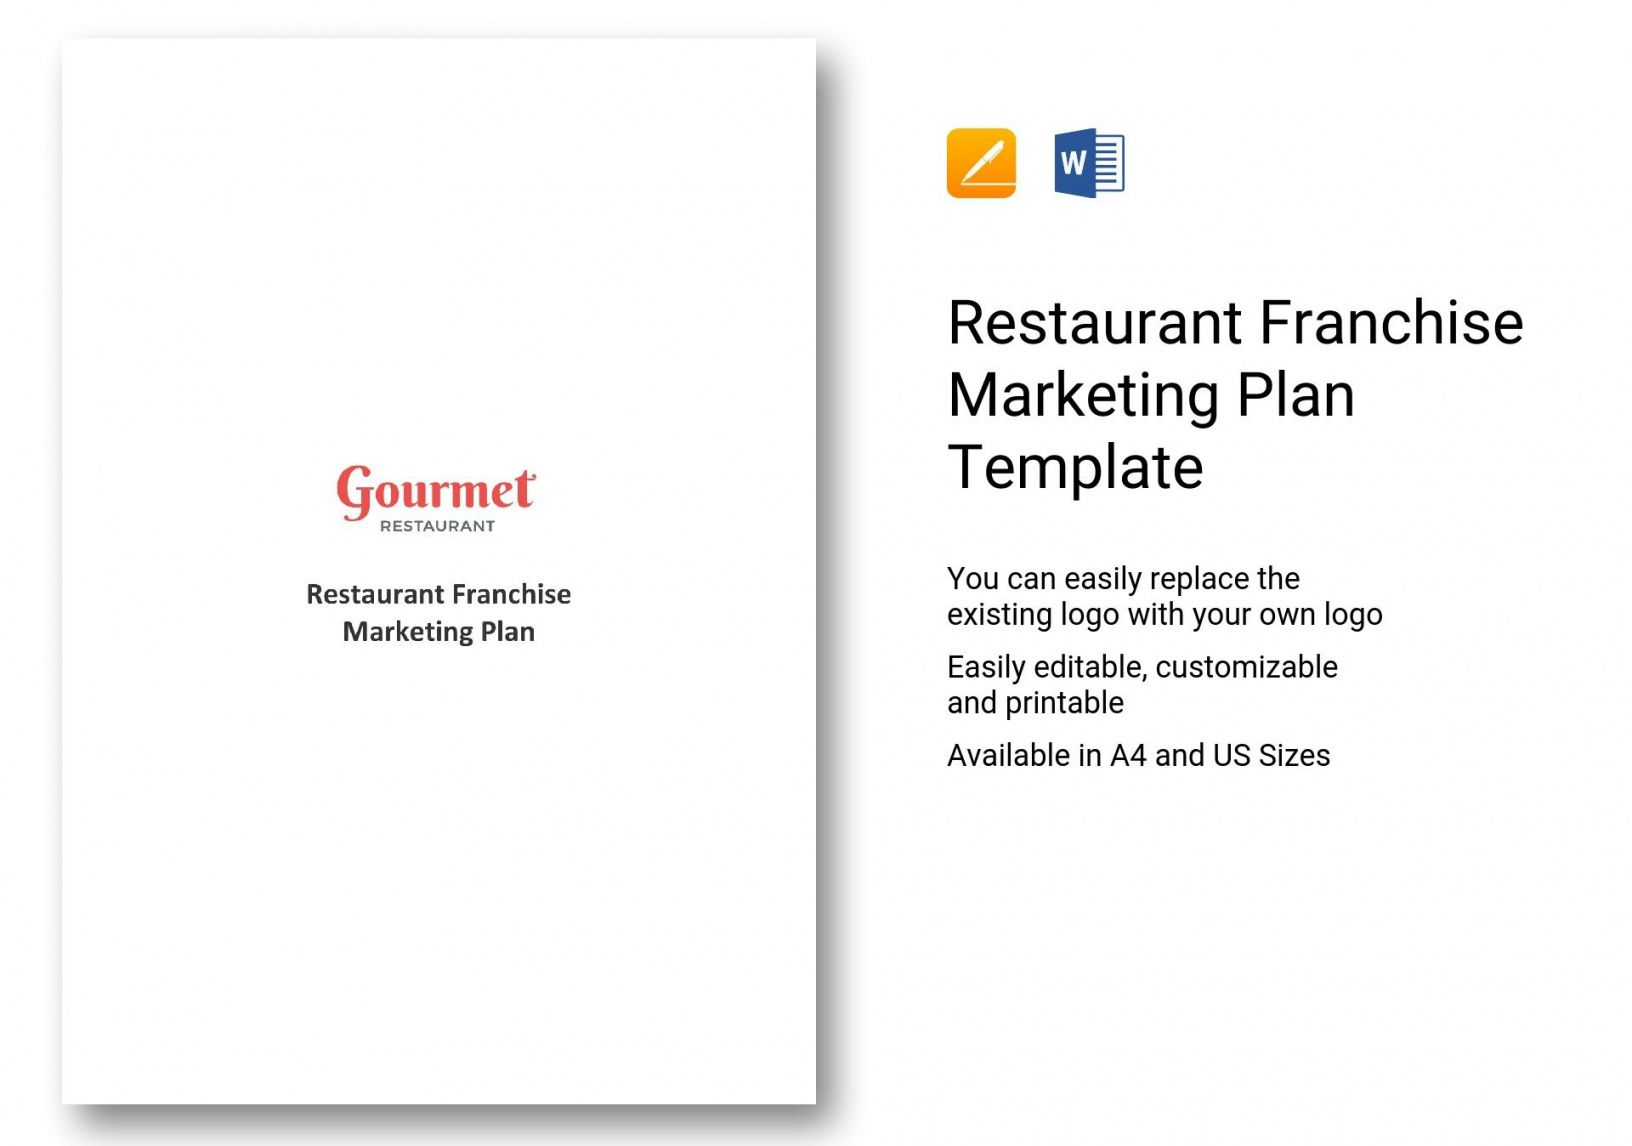 this is the restaurant franchise marketing plan template